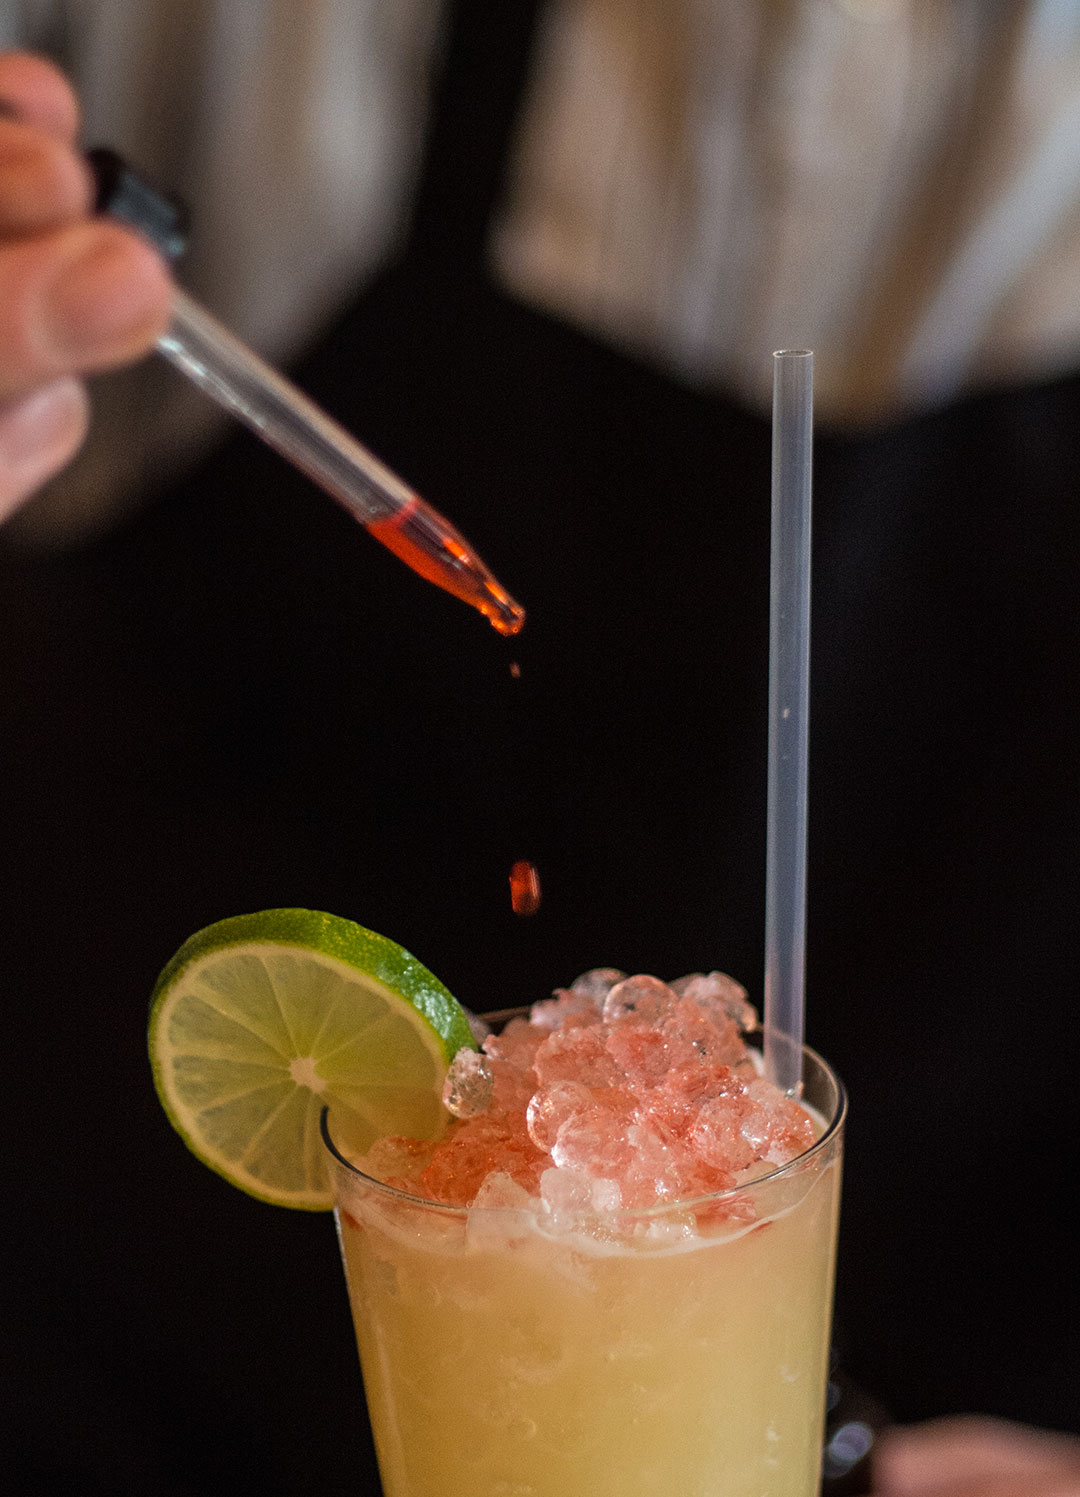 Enjoy a freshly prepared cocktail at Cane & Table